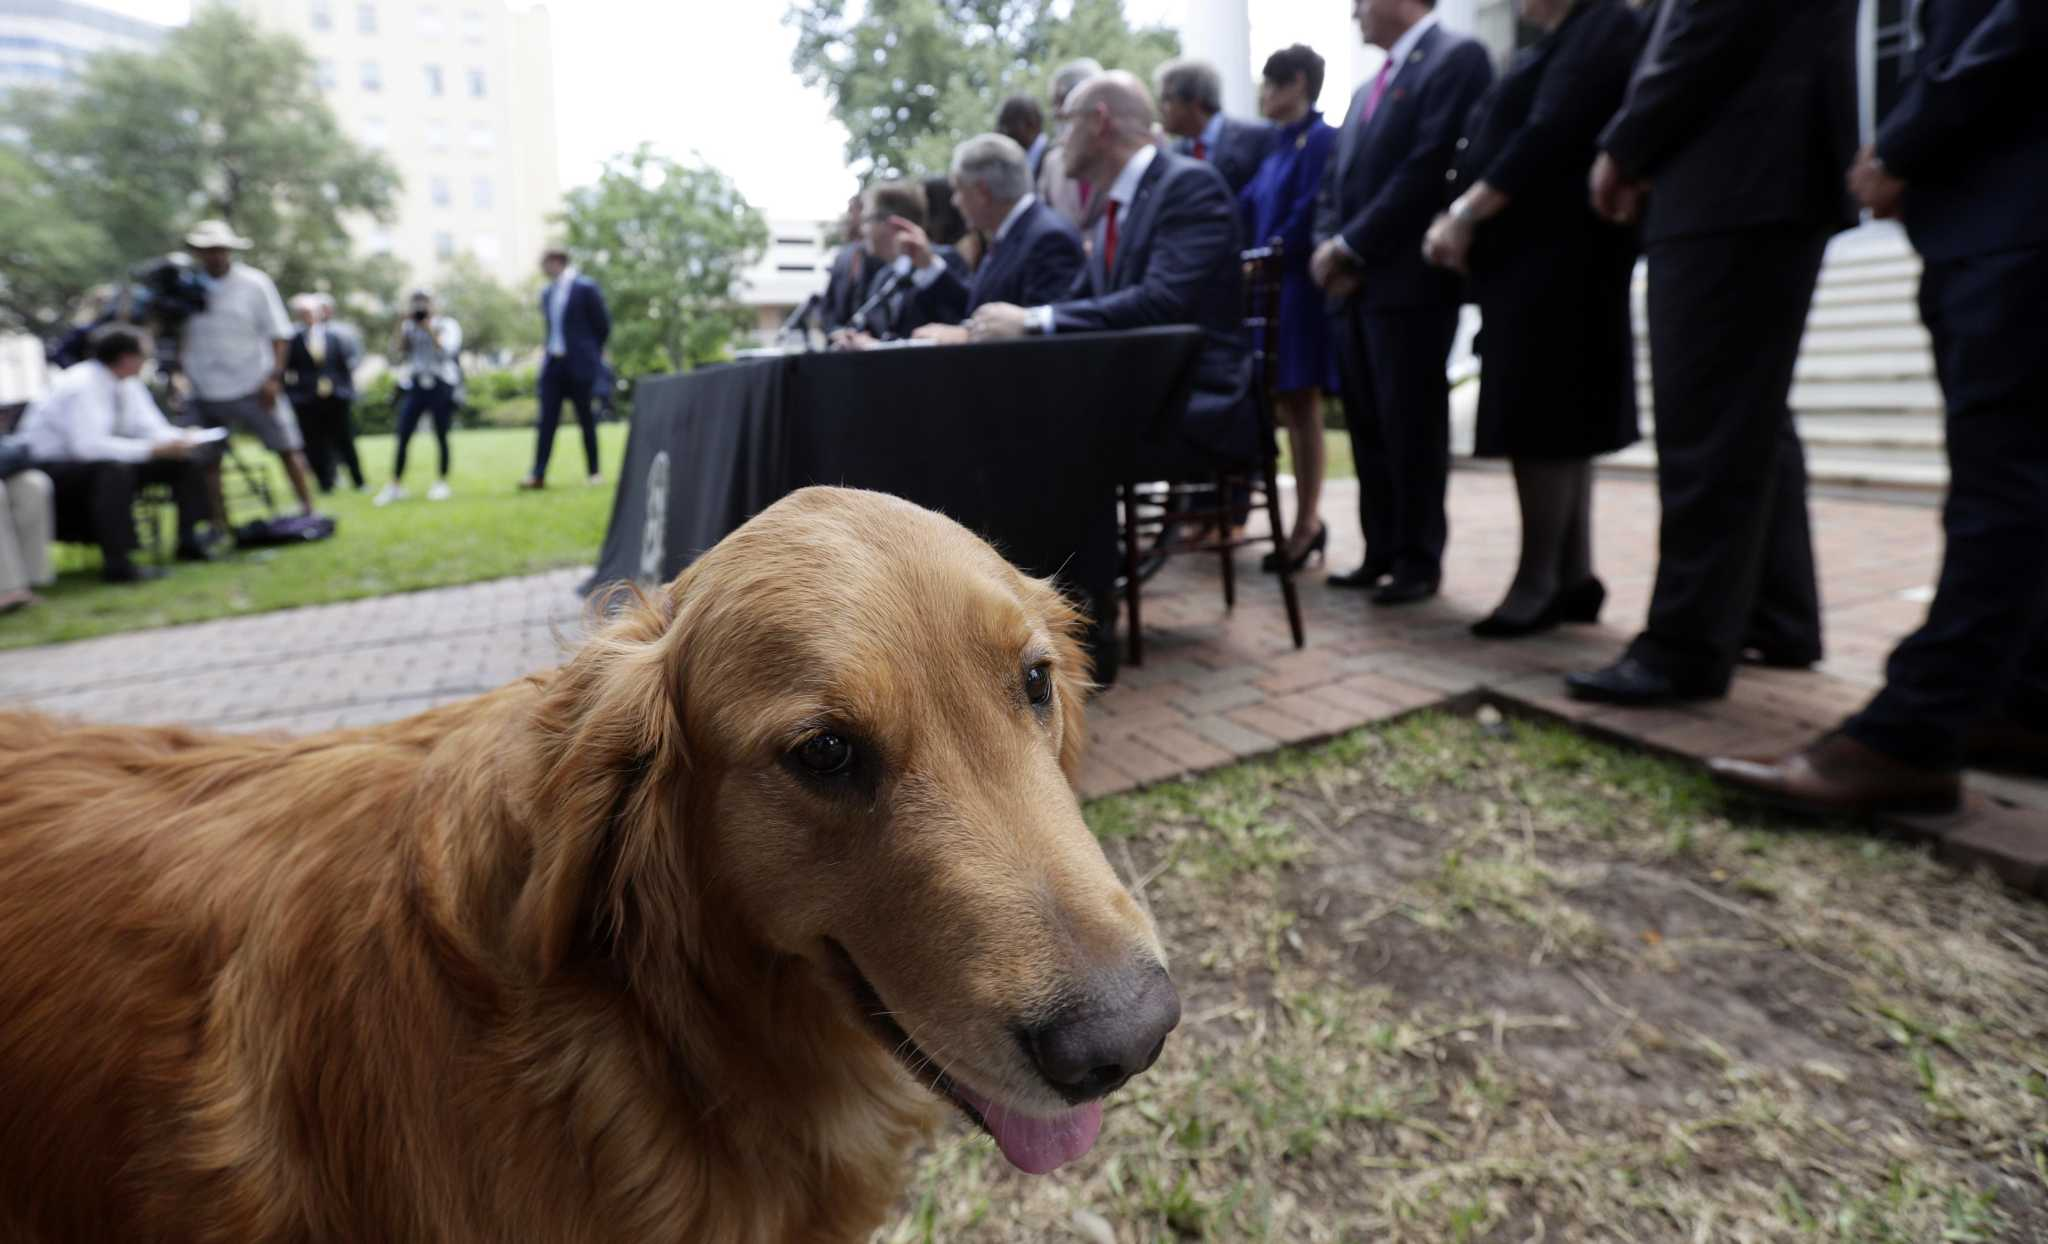 #AbbottHatesDogs trends after governor vetoes animal cruelty bill